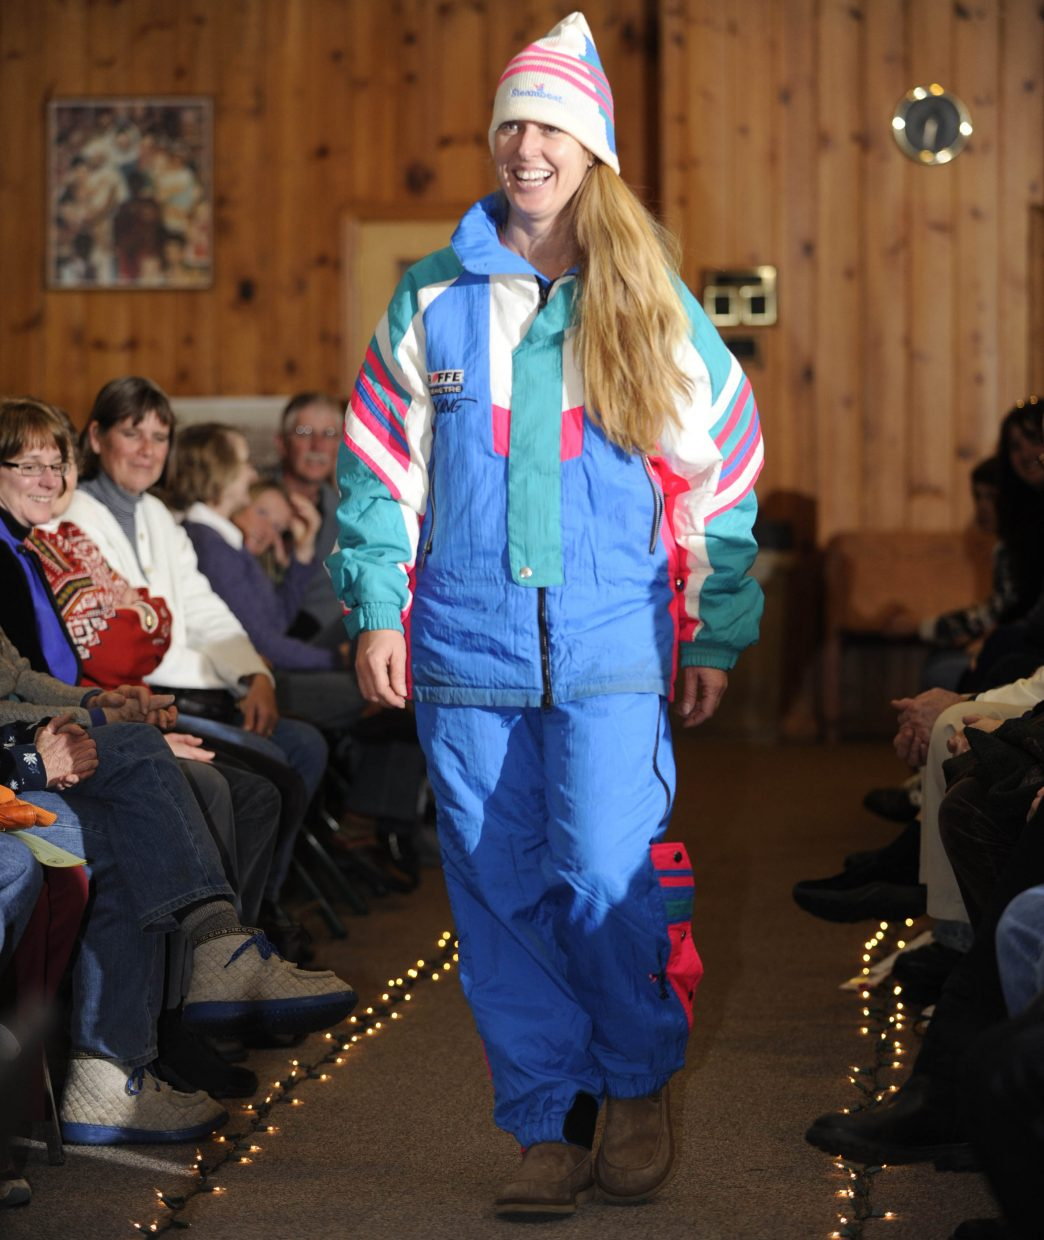 Christina Gumbiner is a vision in neon at the vintage ski fashion show Thursday.